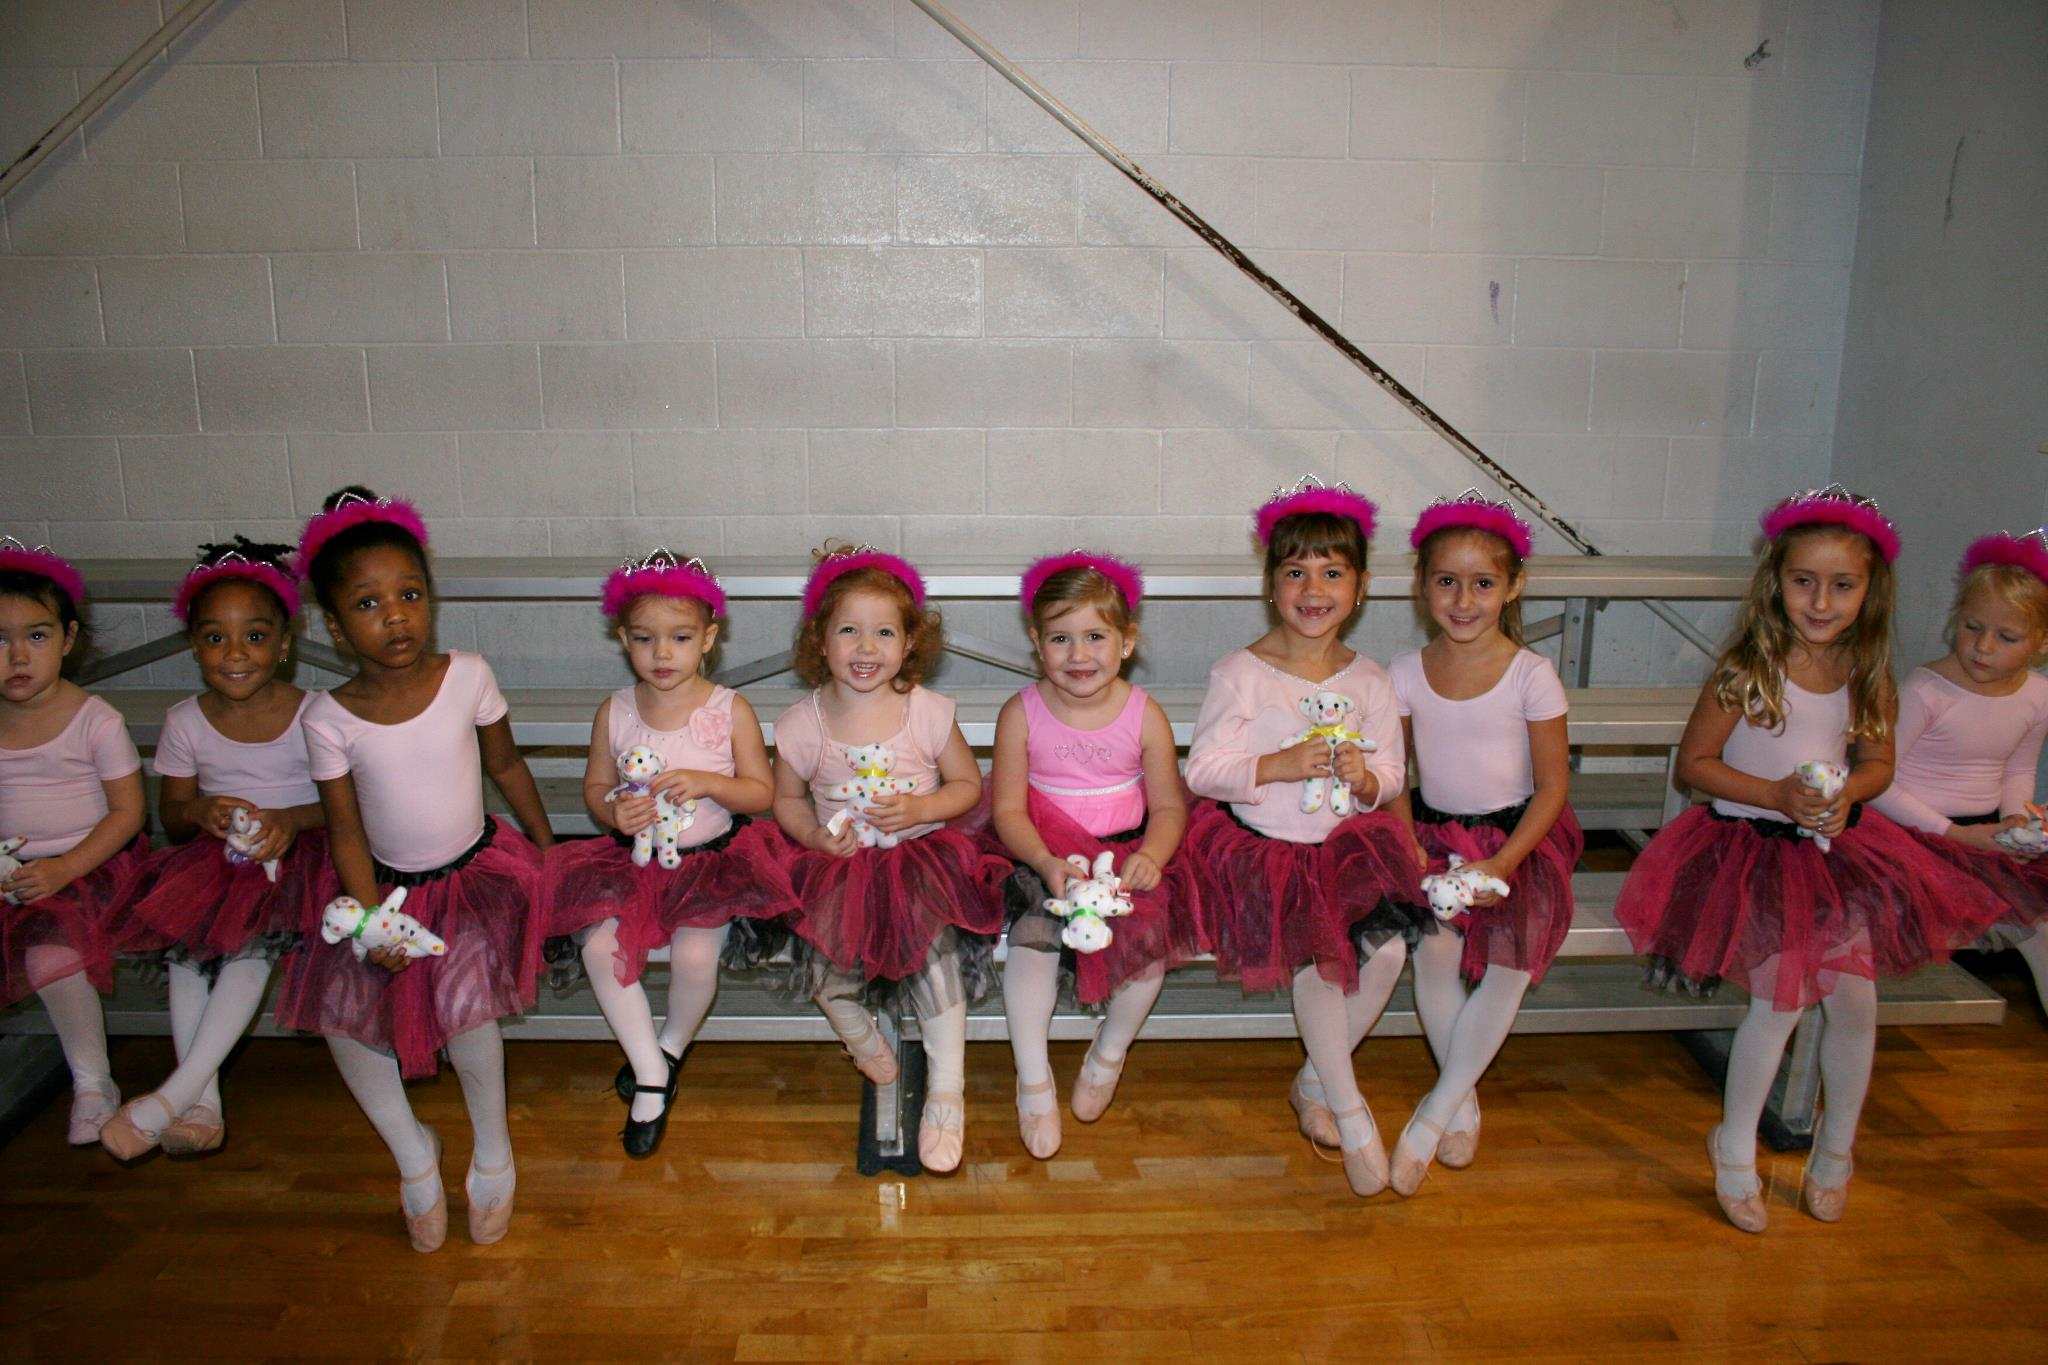 Dancers ready for recital